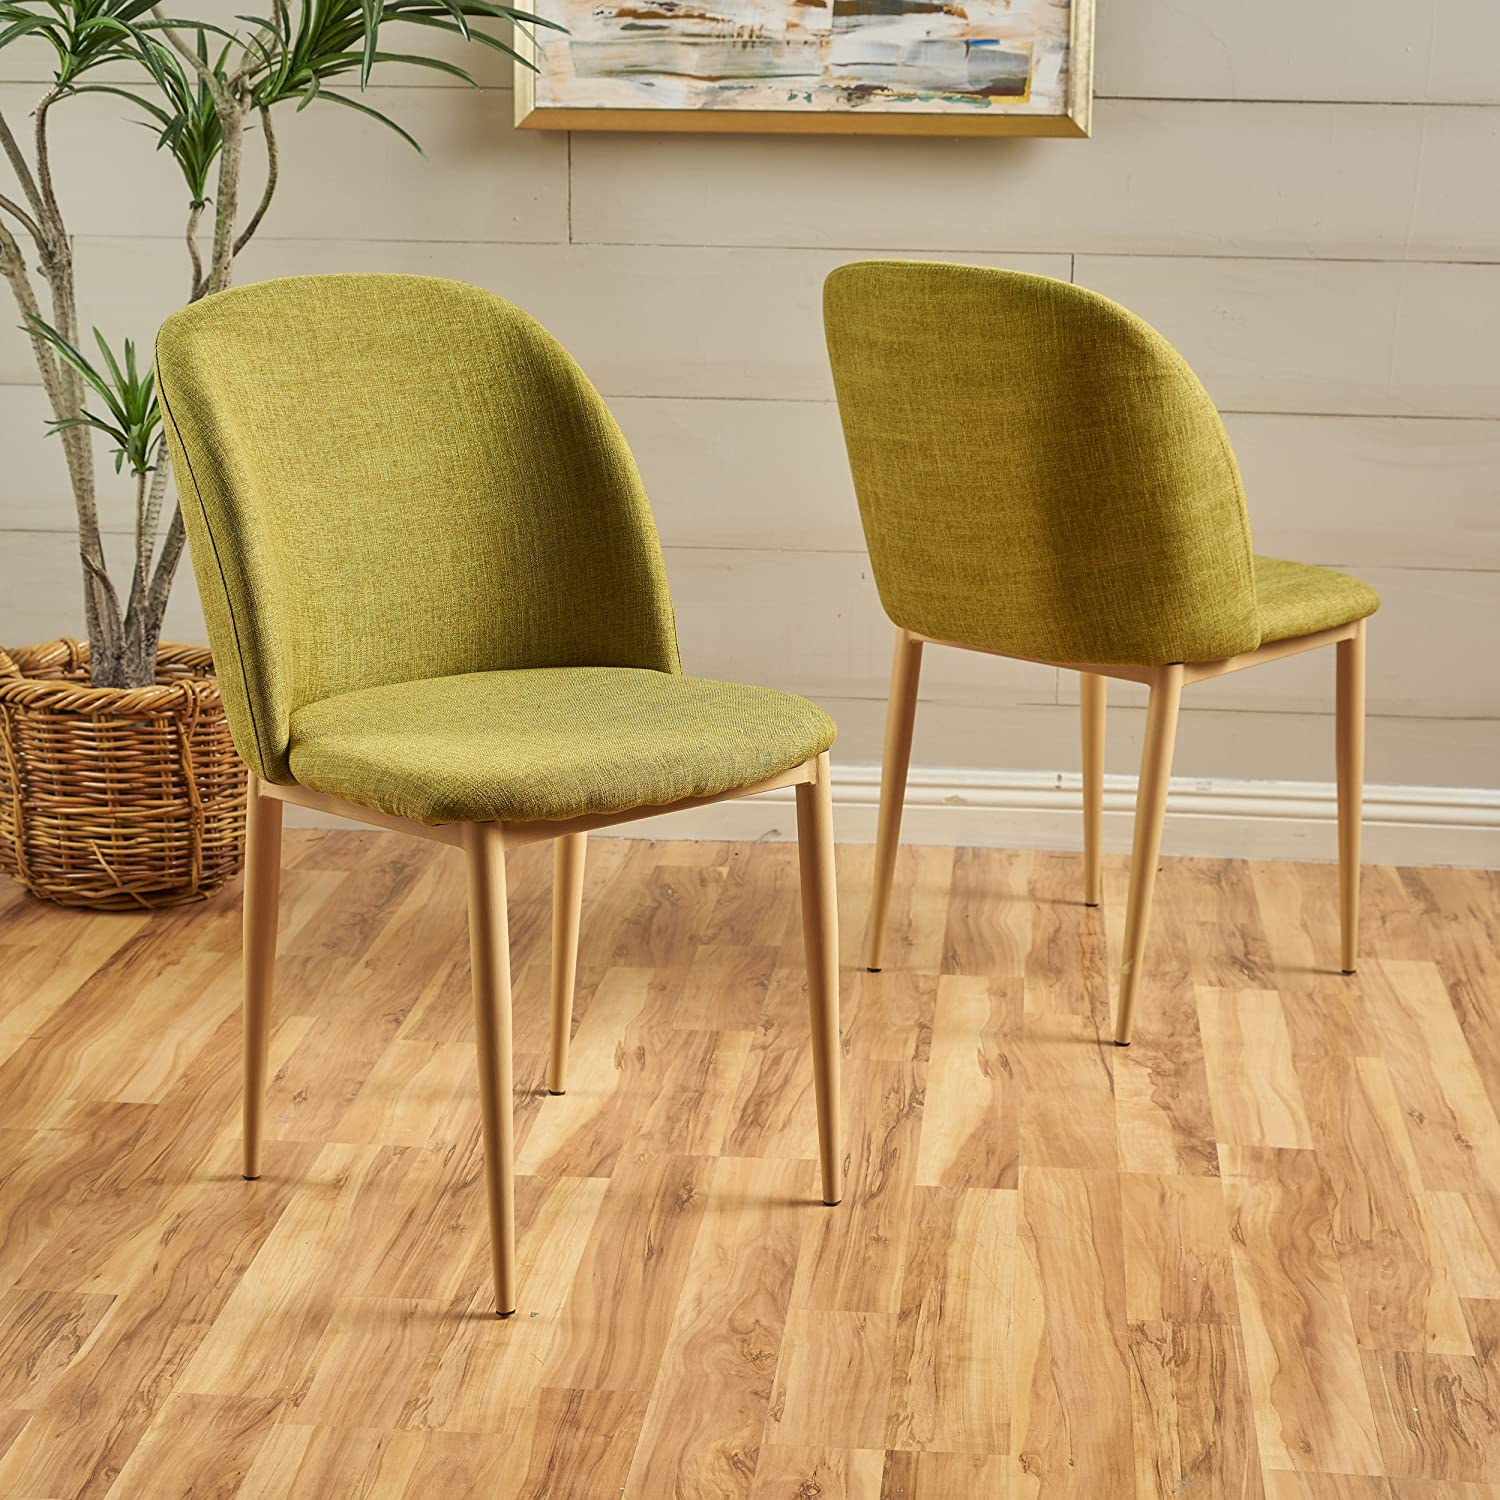 Christopher Knight Home Anneliese Fabric Dining Chairs Set of 2 , Green